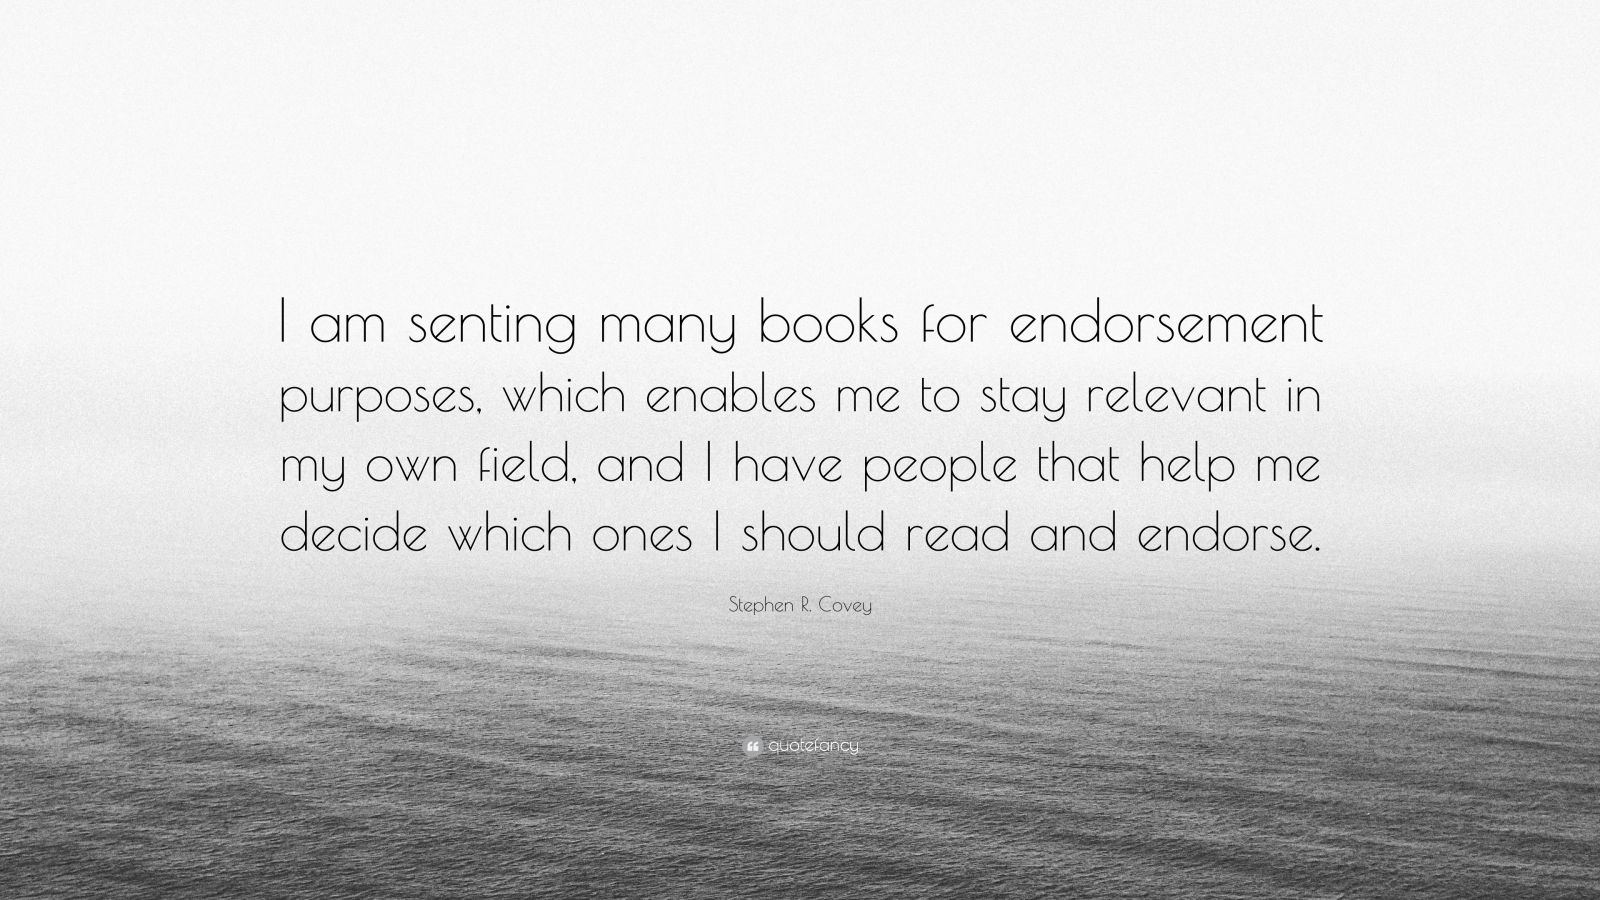 """Stephen R. Covey Quote: """"I am senting many books for endorsement purposes, which enables me to stay relevant in my own field, and I have people that help me decide which ones I should read and endorse."""""""